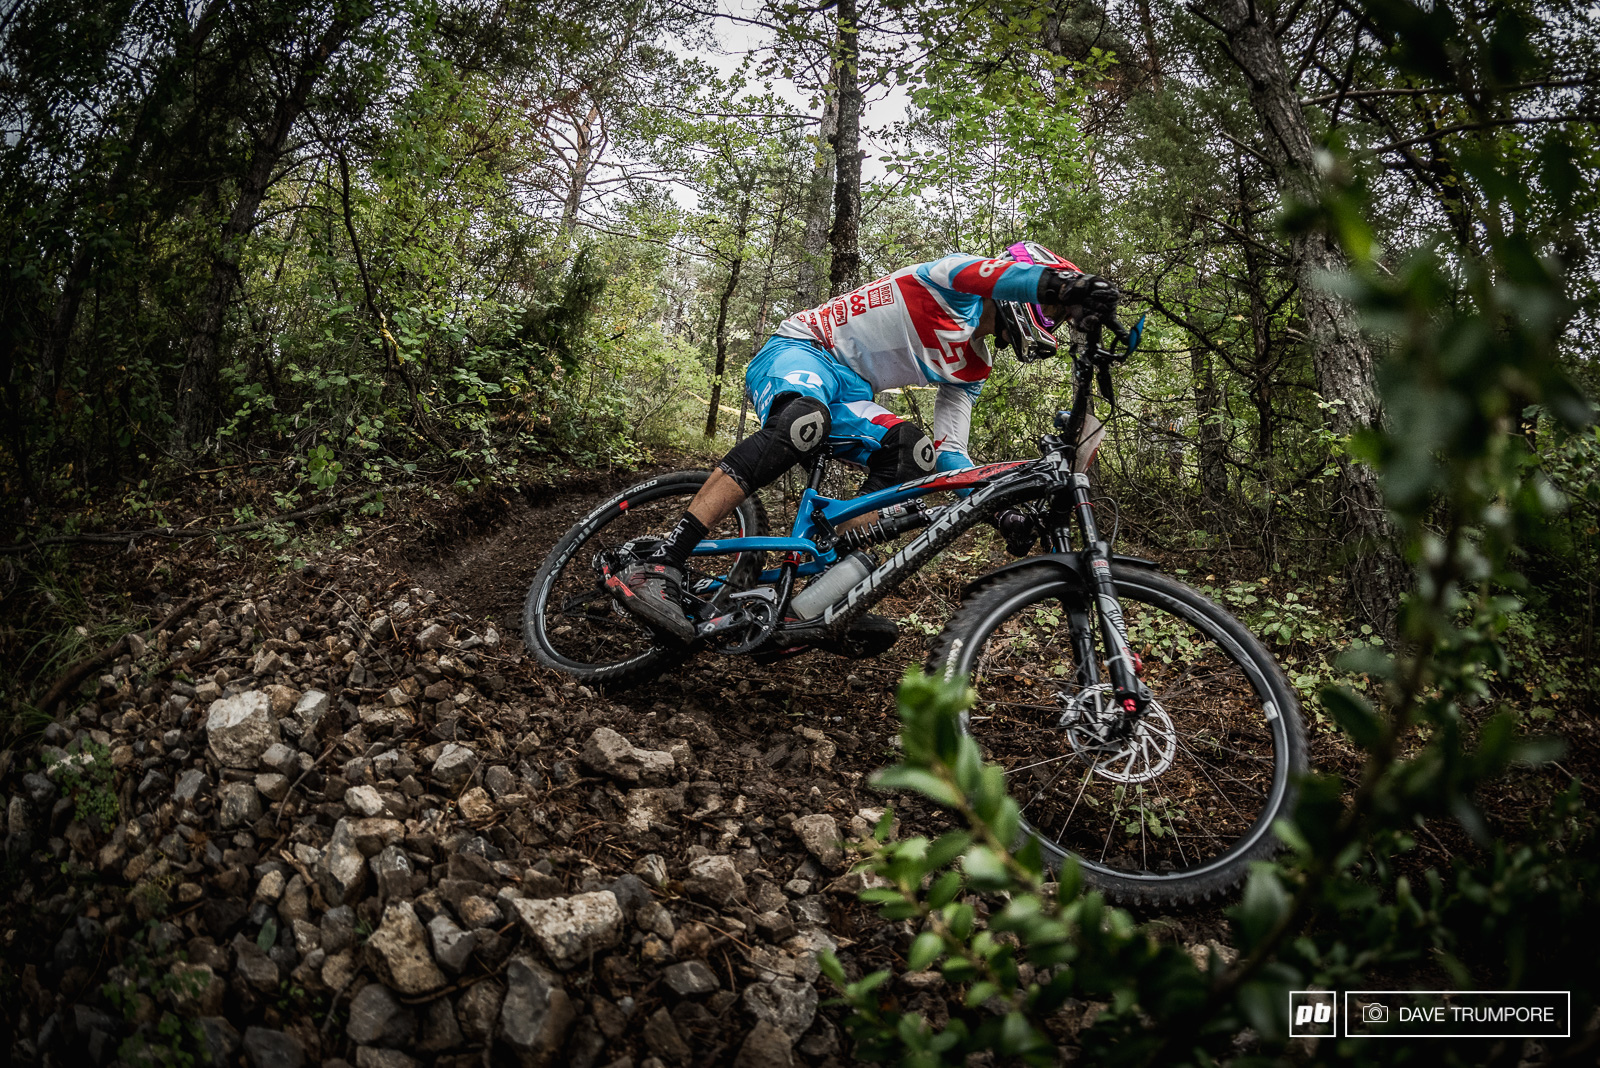 Nico Vouilloz knows these trails quite well having lived and trained in this region his whole career. A win on stage 3 made up for his slow start and he is now sitting 2nd in the overall.